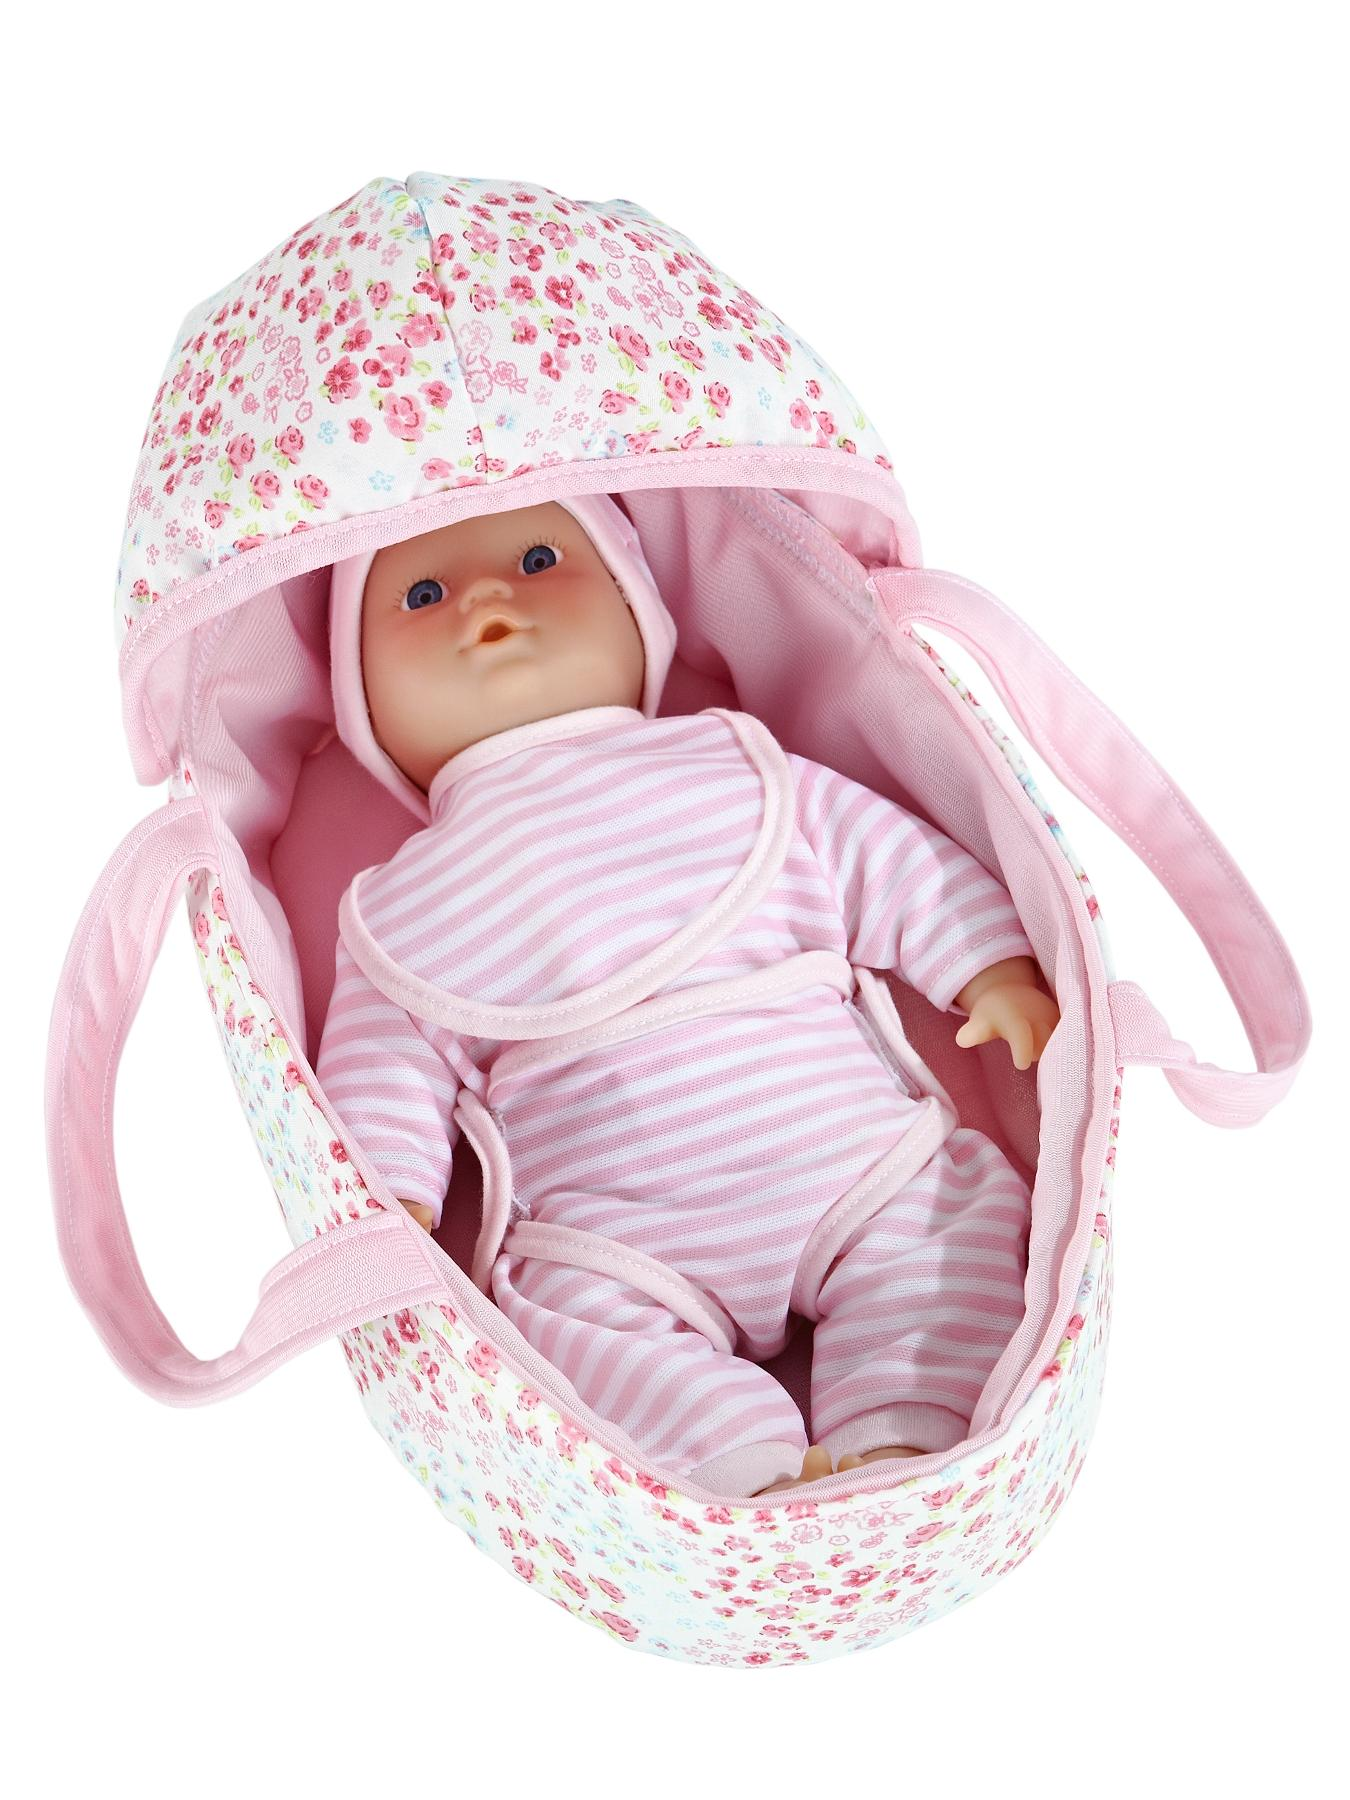 10 inch Baby in Carry Cot